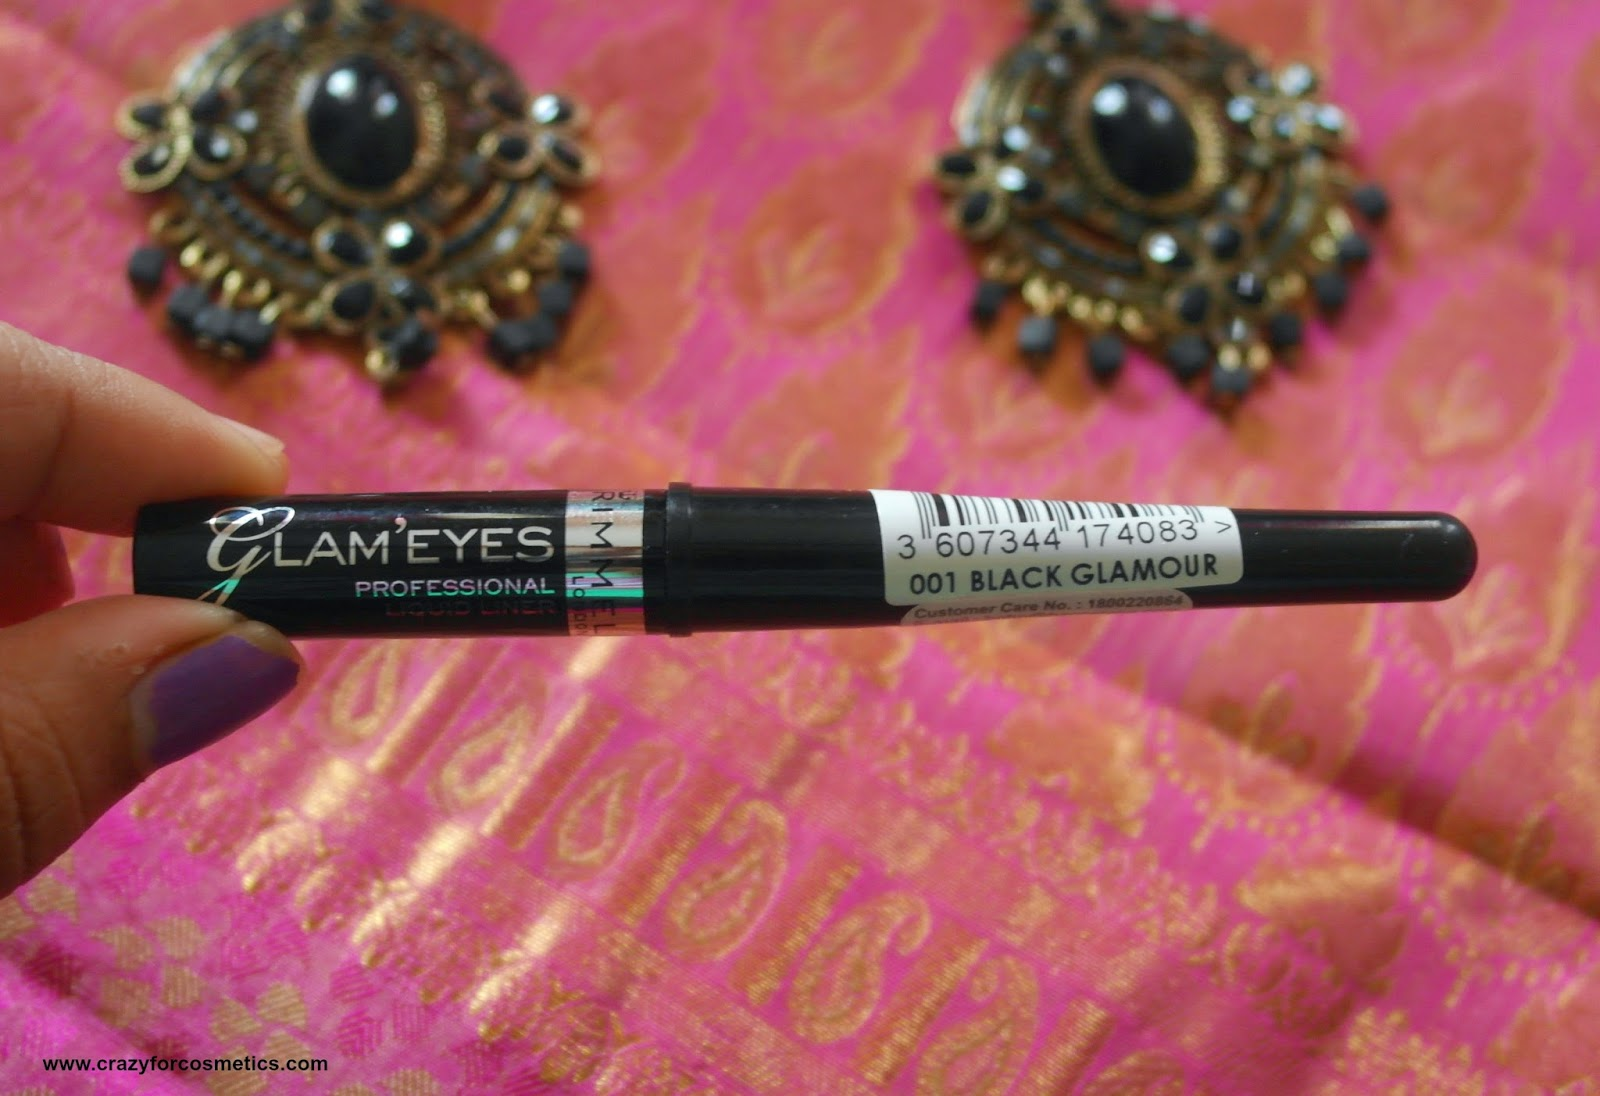 Rimmel London Black Liquid Liner Glam eyes professional eyeliner packaging